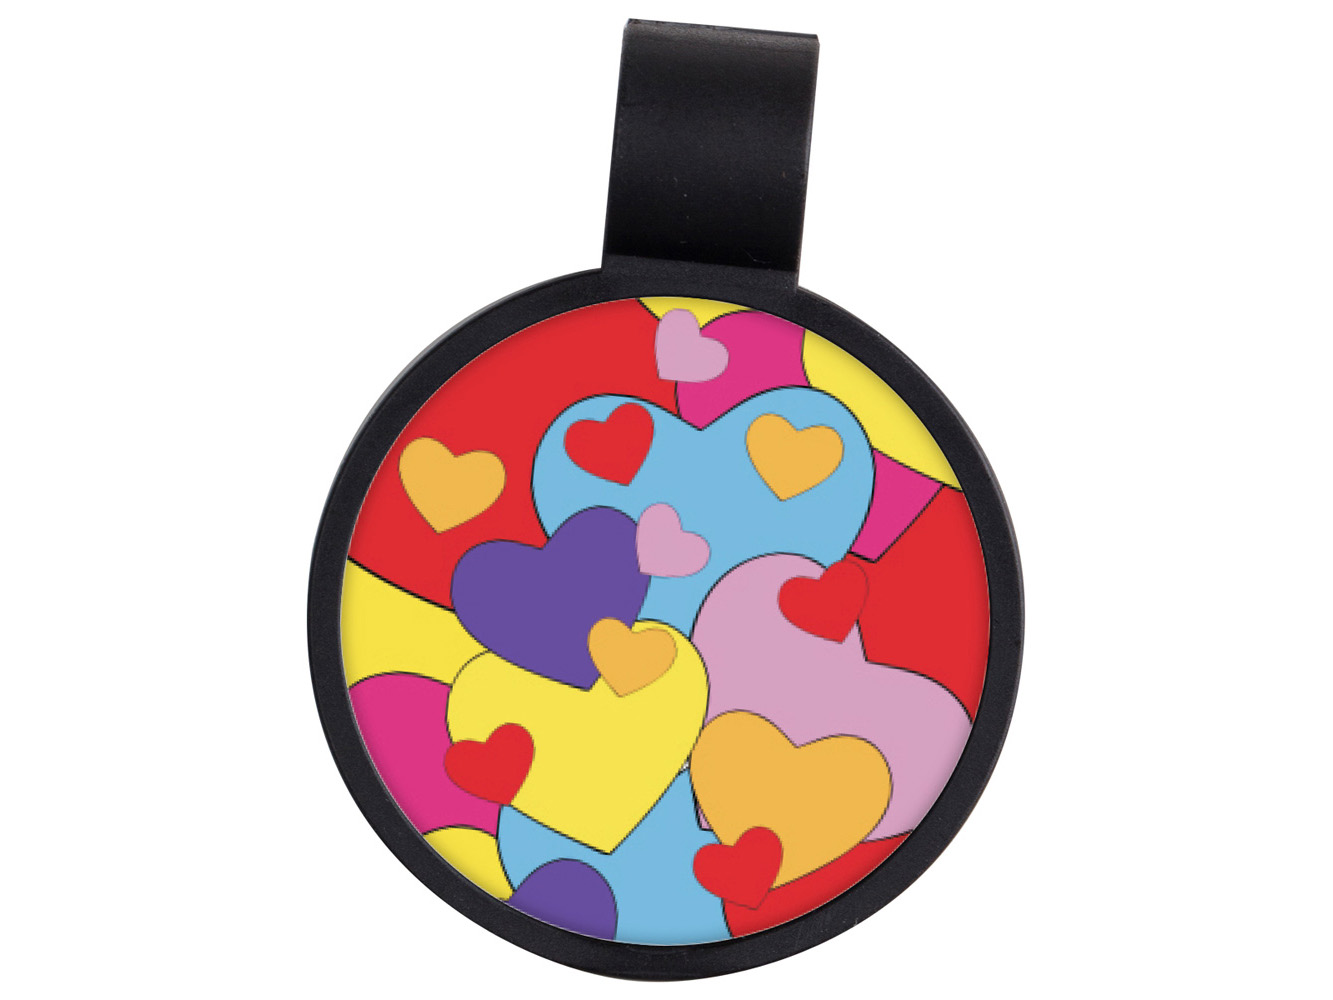 STF6: Hearts Anti-Microbial Stethoscope ID Tag